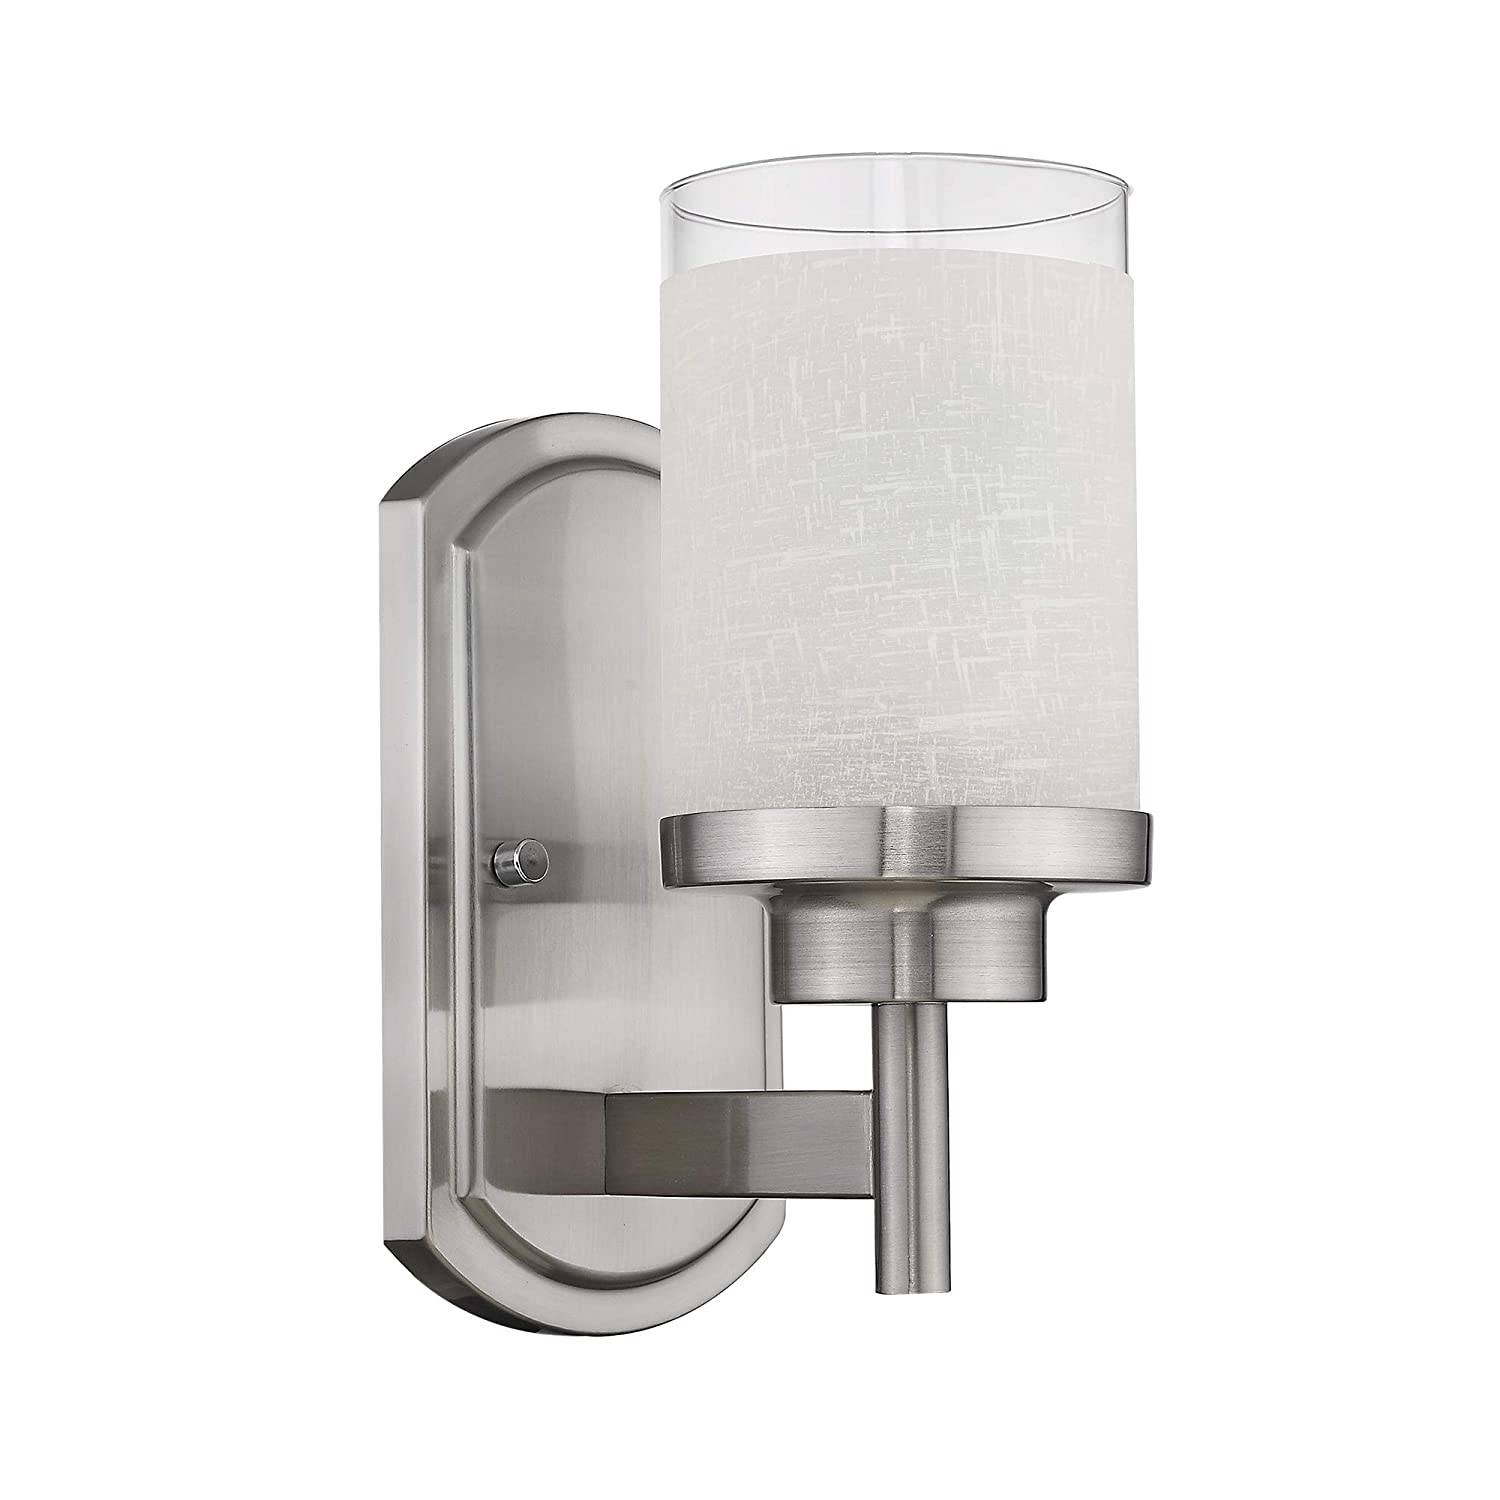 Jazava modern bath vanity light fixture industrial bathroom wall sconces for farmhouse halls white linen frosted glass shades in brushed nickel